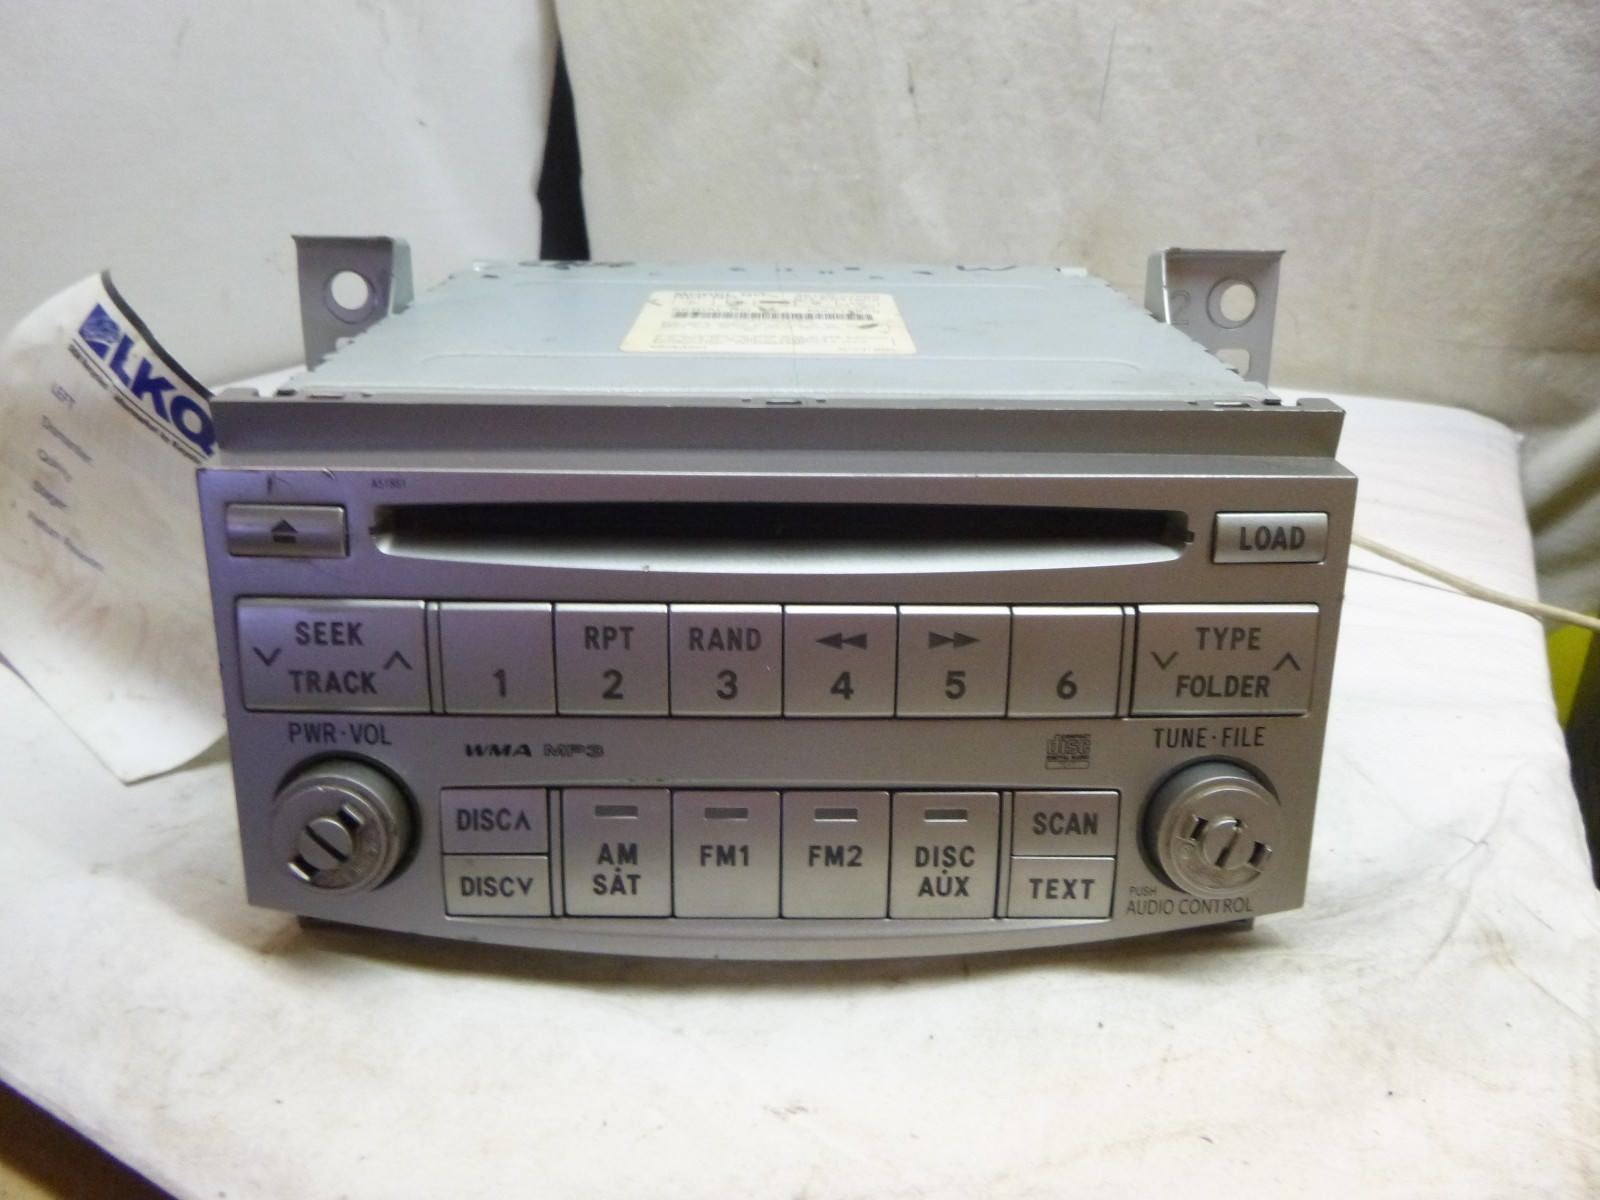 08 09 10 Toyota Avalon Radio 6 Disc Cd MP3 Player A51851 86120-07060 CLA09